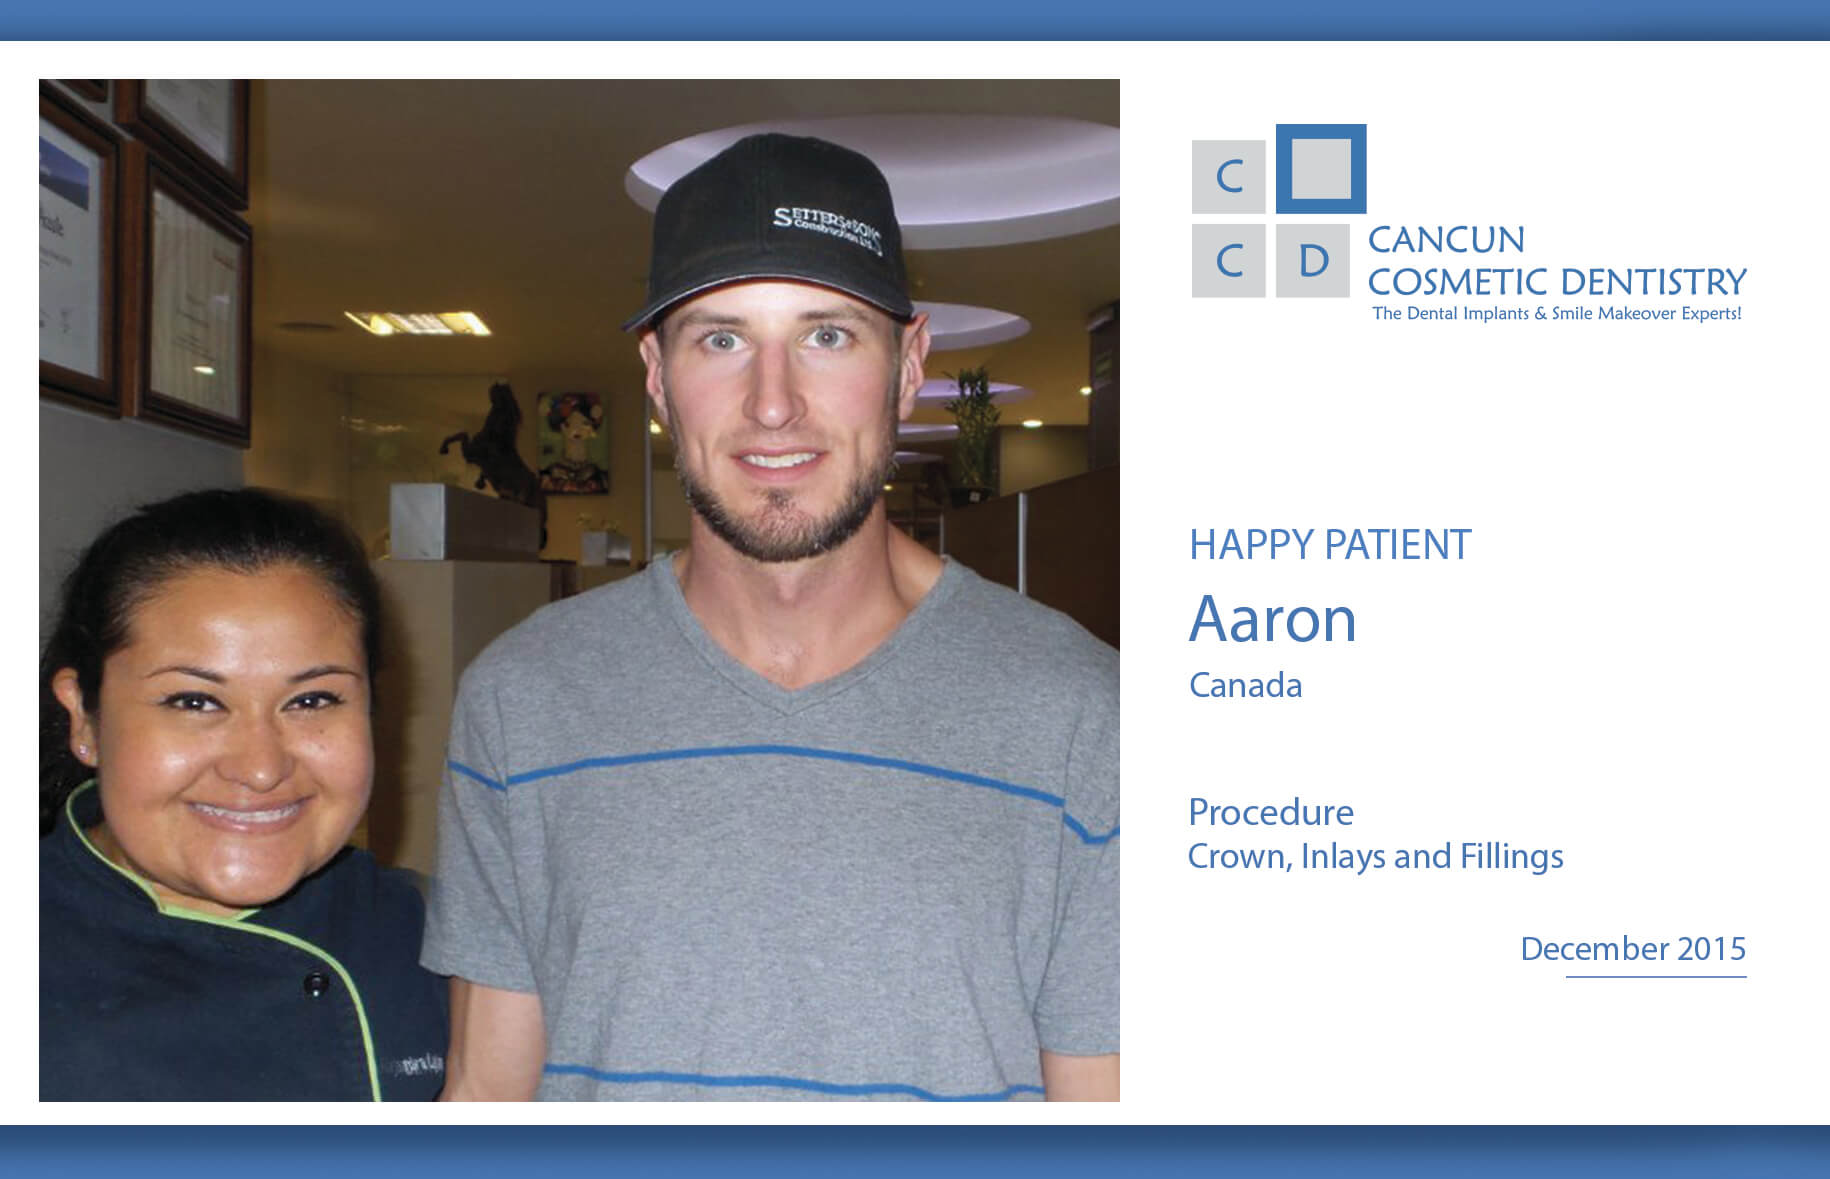 Patient is happy with affordable dental treatments in Cancun Cosmetic Dentistry!